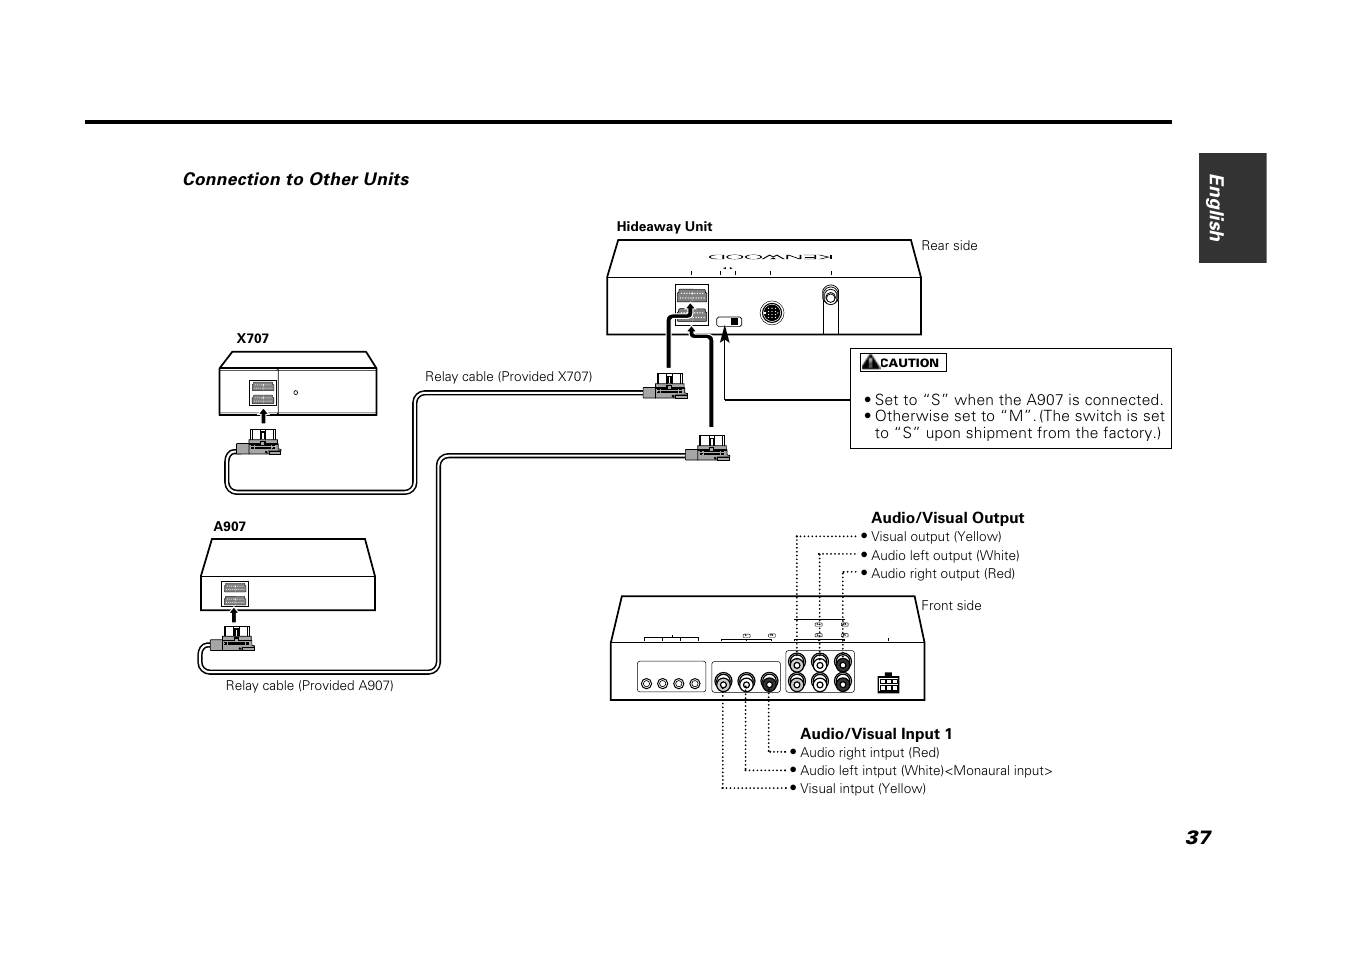 connection to other units, rl r l, english 37 | kenwood vz907 user manual |  page 37 / 44